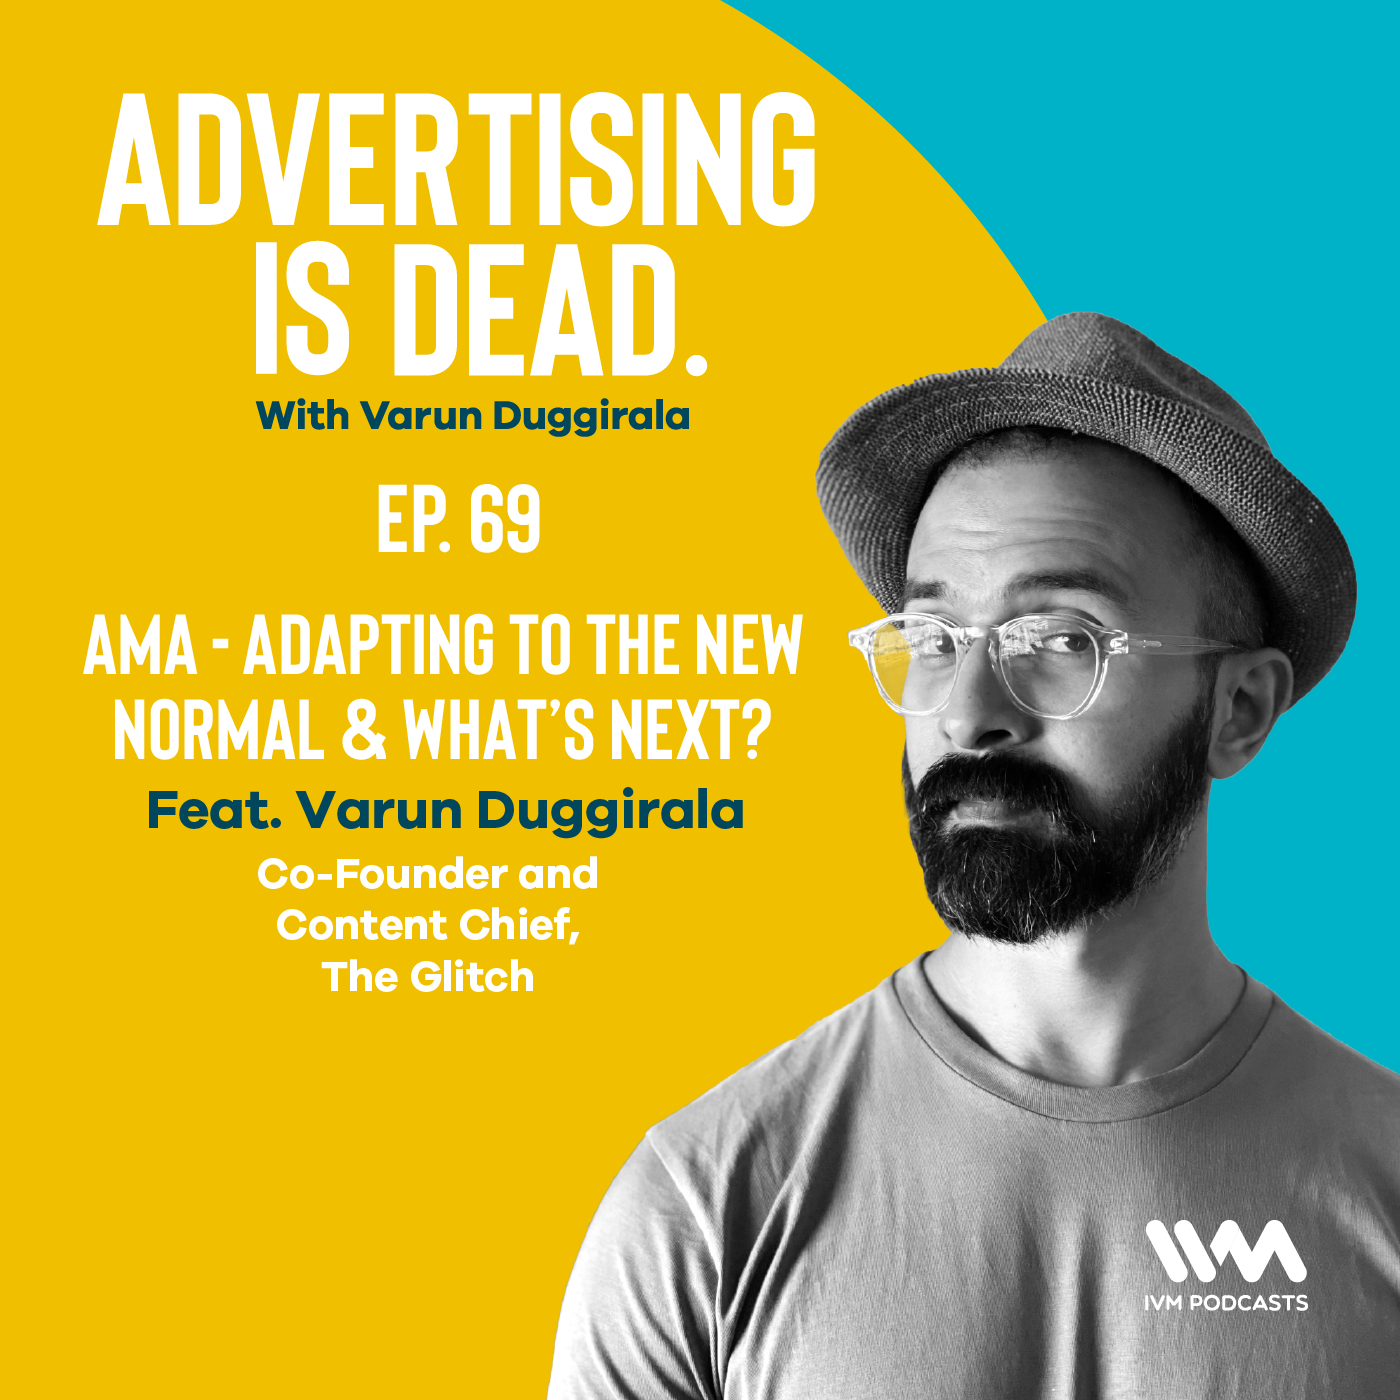 Ep. 69: AMA - Adapting to the New Normal & What's Next?